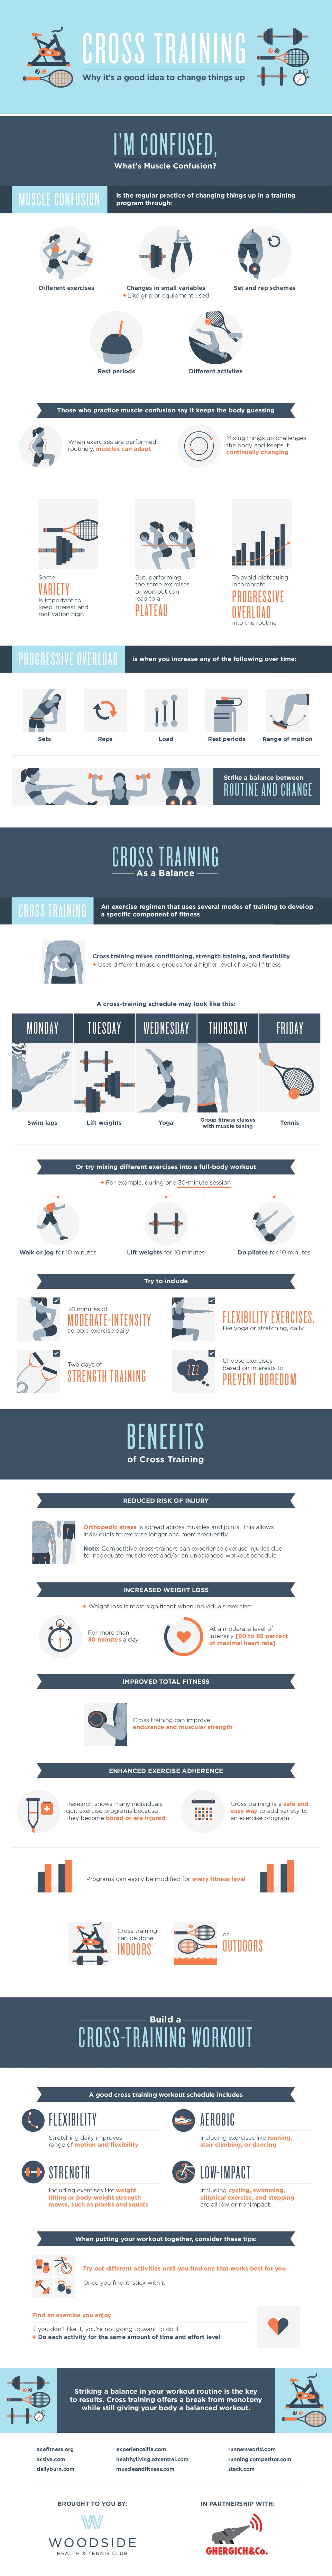 What Is Cross Training And Why It's A Good Idea Infographic